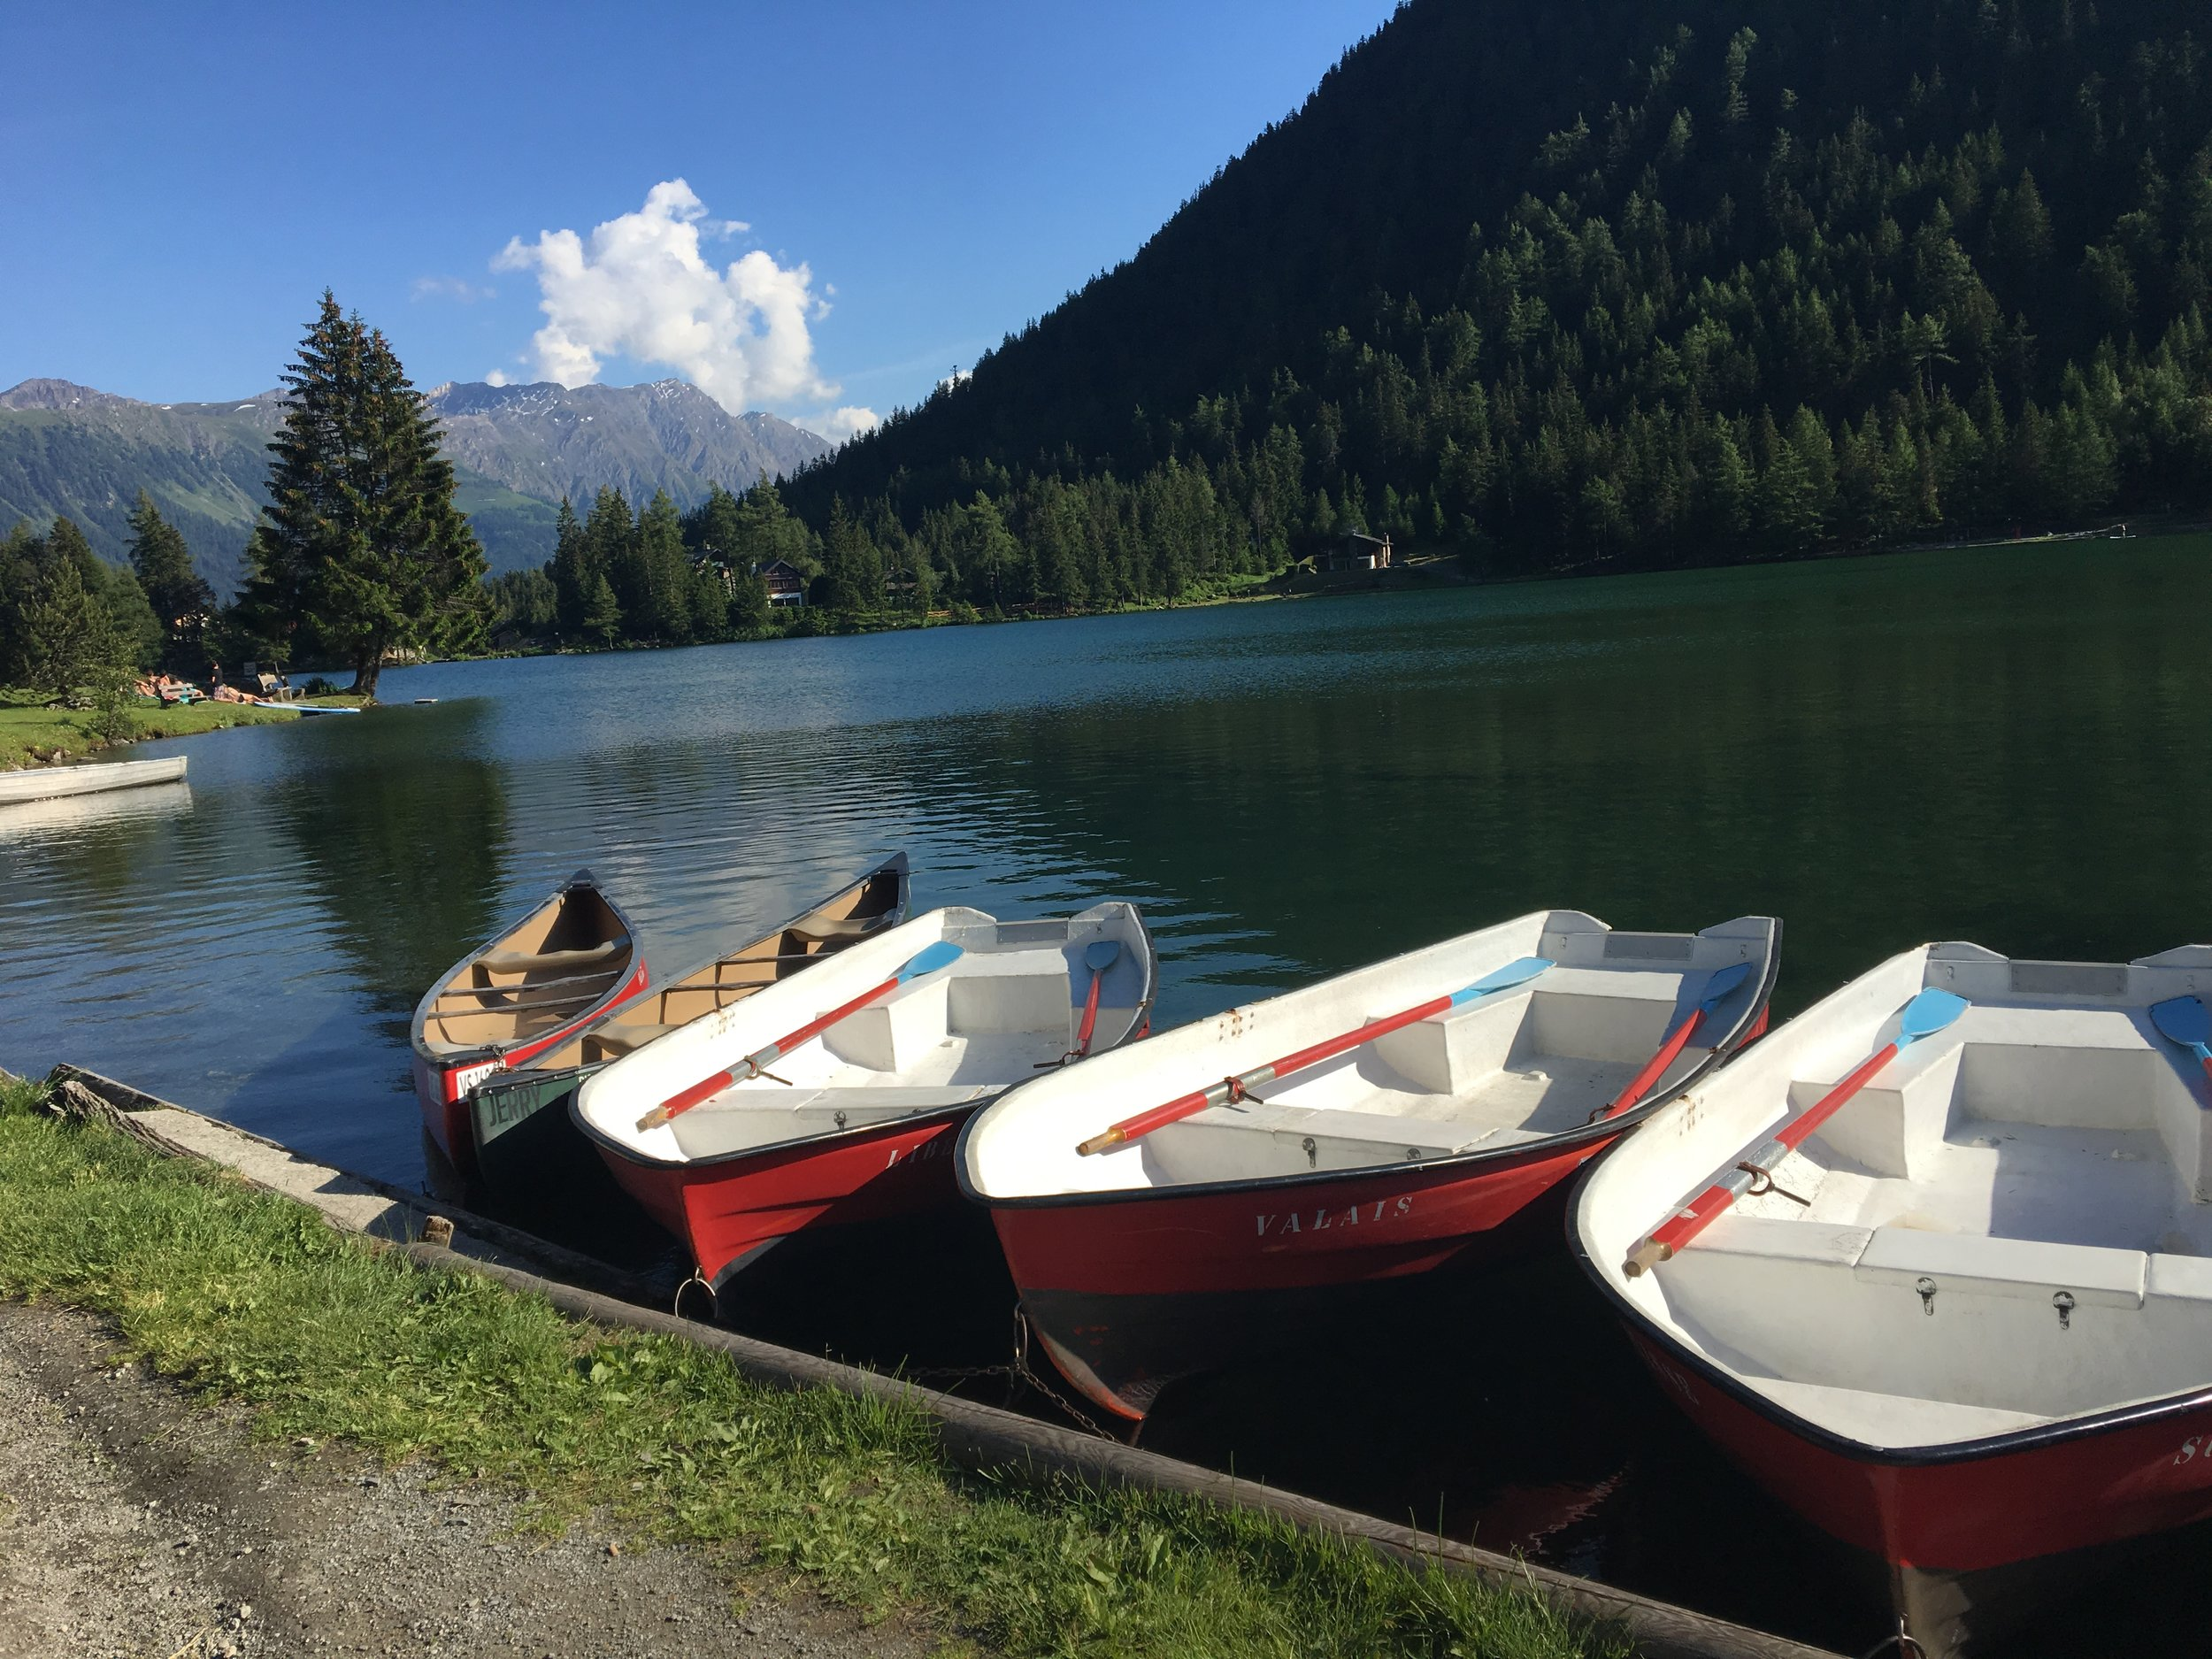 Champex-Lac is alpine village where you restock on supplies and relax by the lake